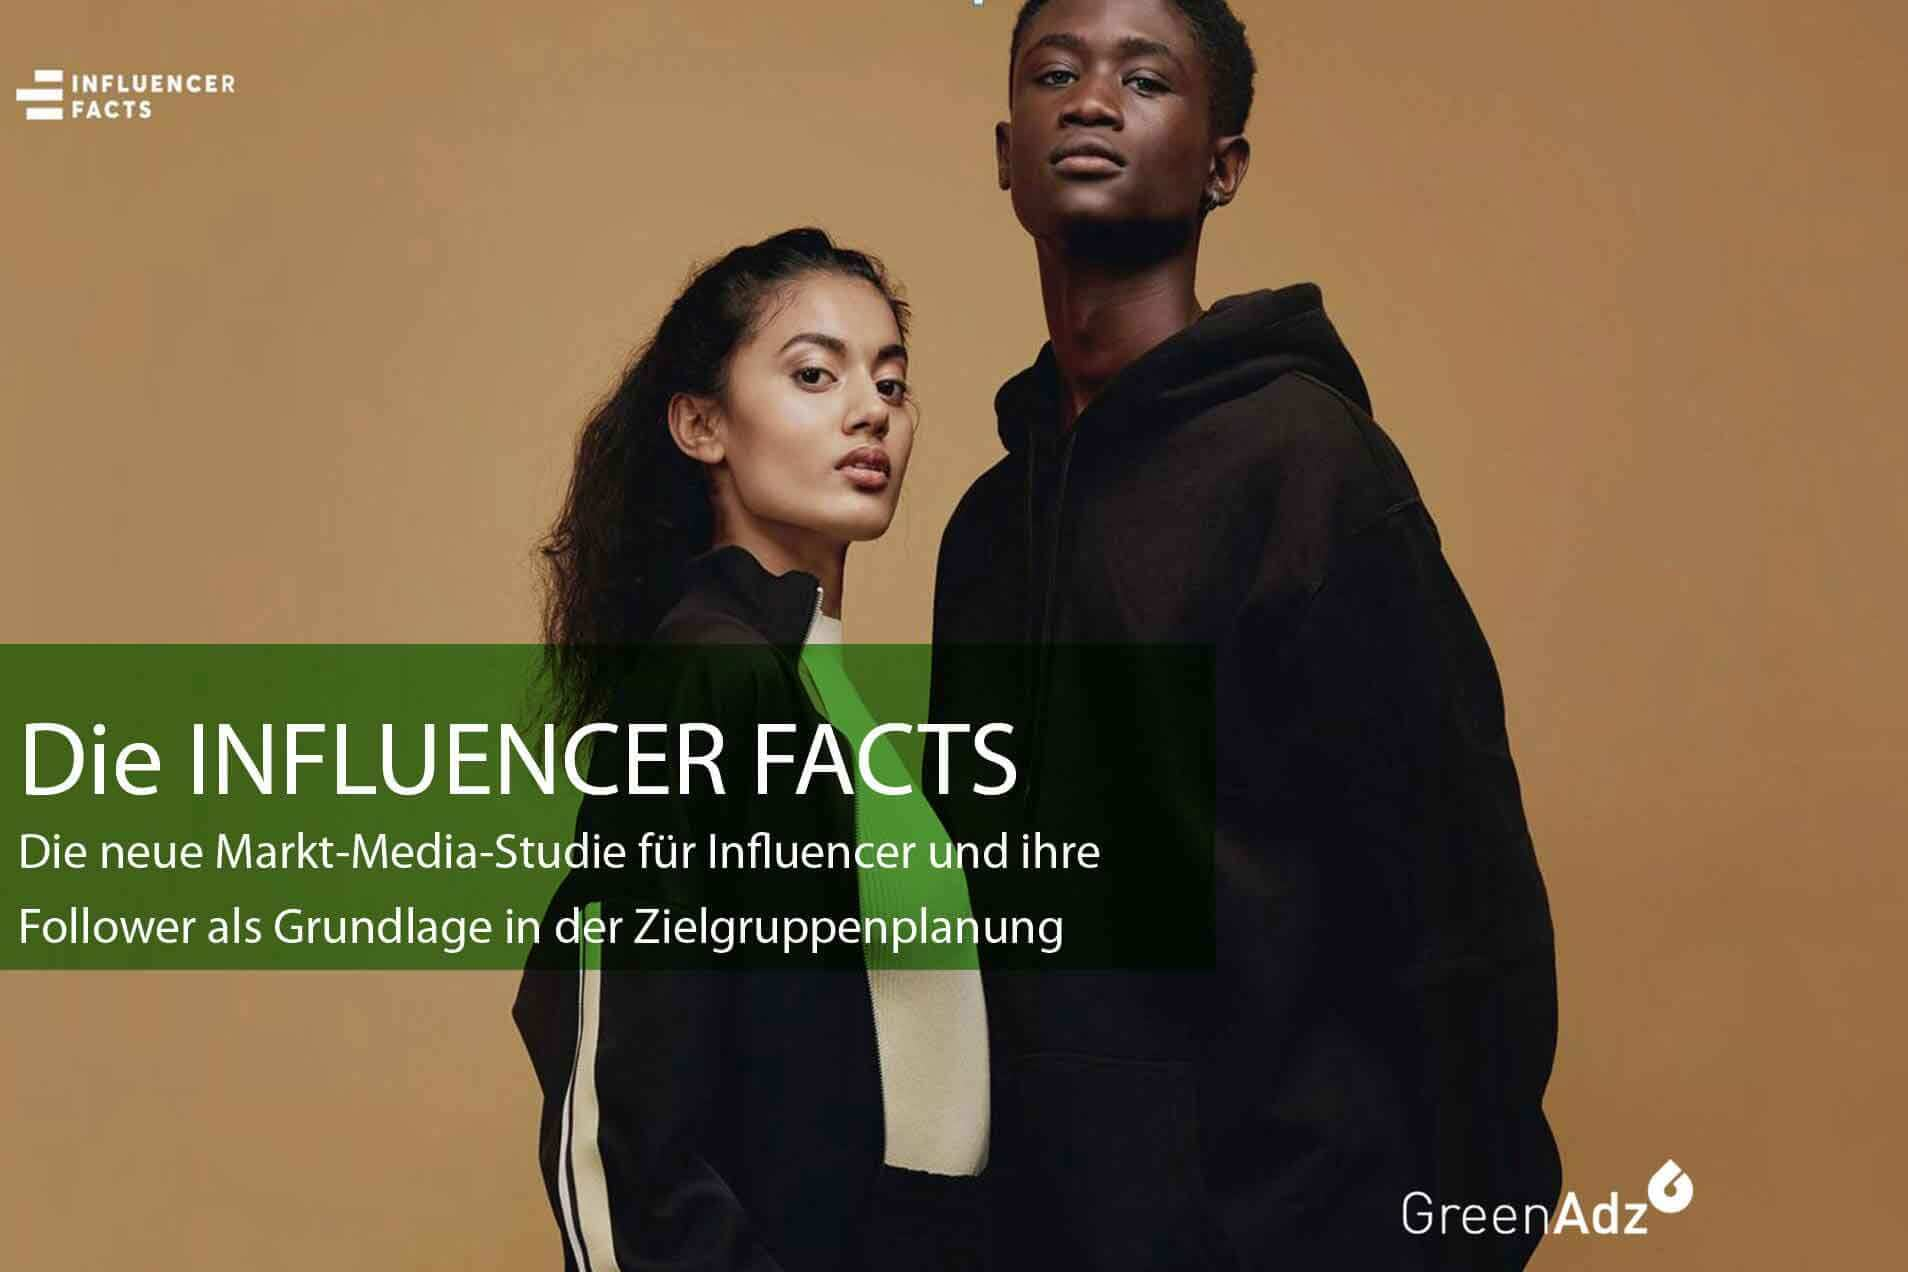 Influencer Facts Webinar